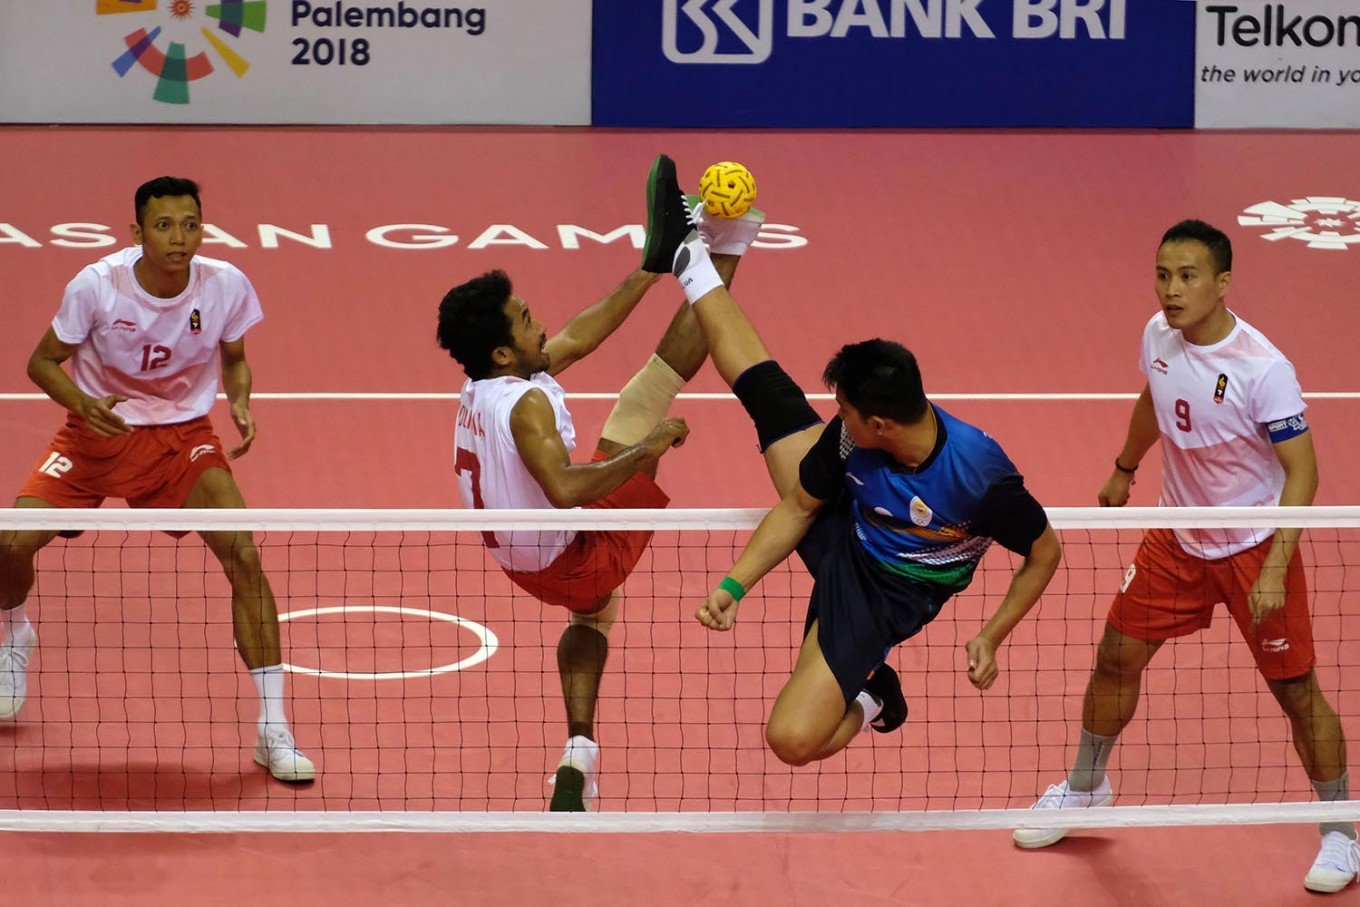 Asian Games: Indonesia's protest left unaddressed